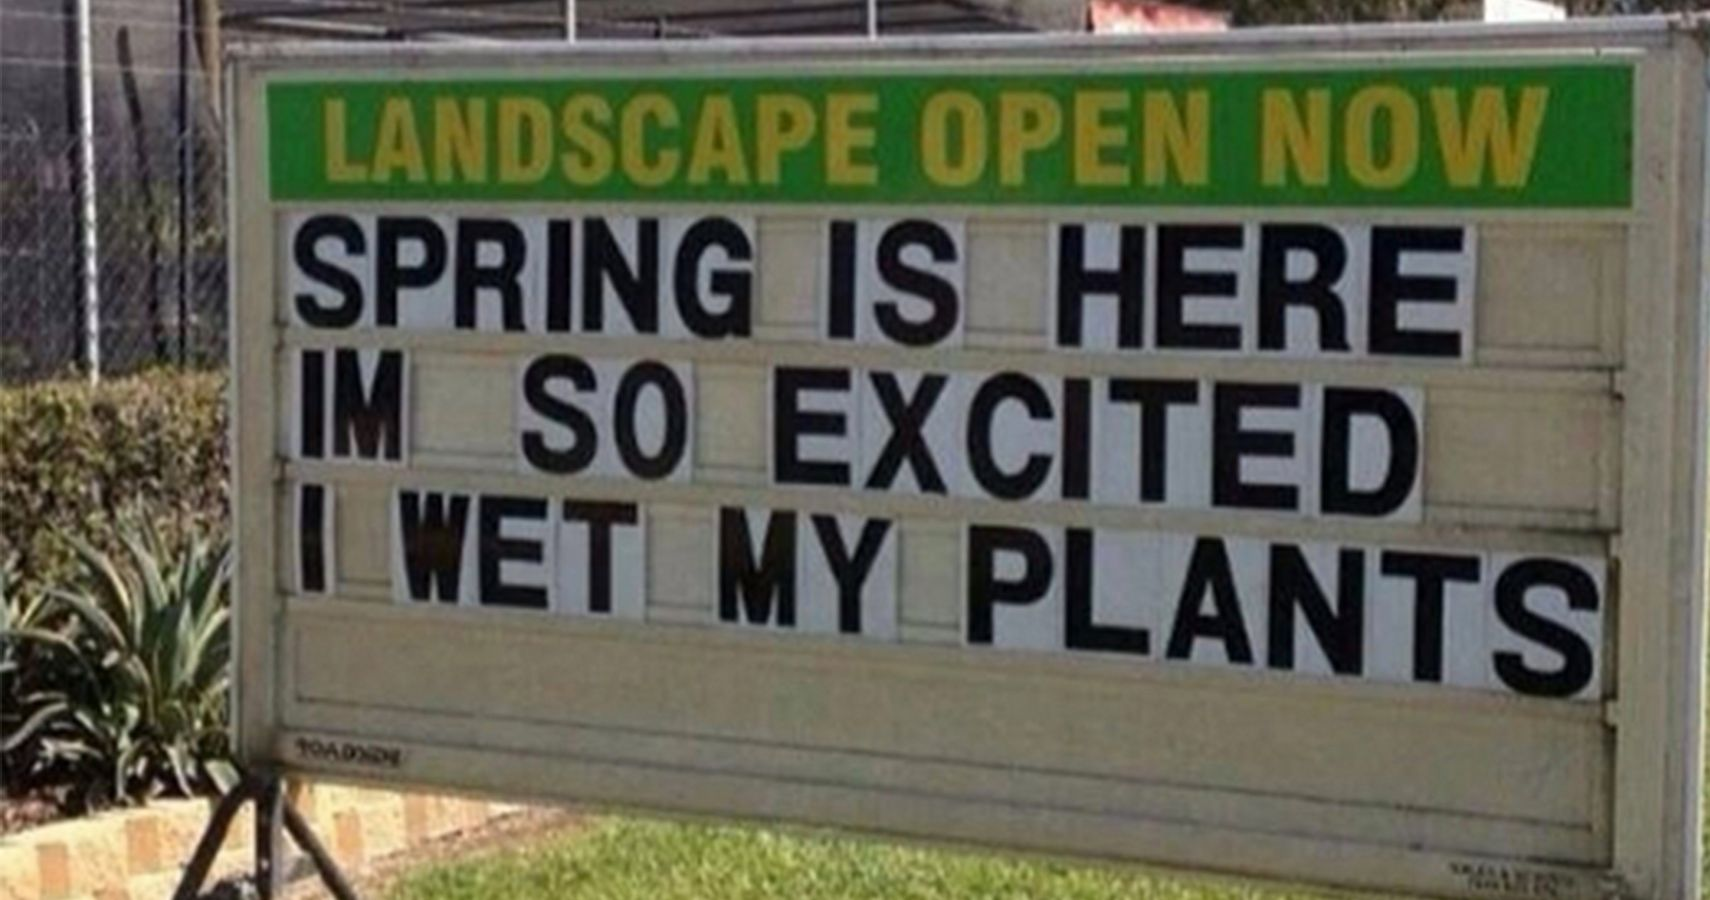 16 Hilarious Signs That Are Pure Marketing Genius